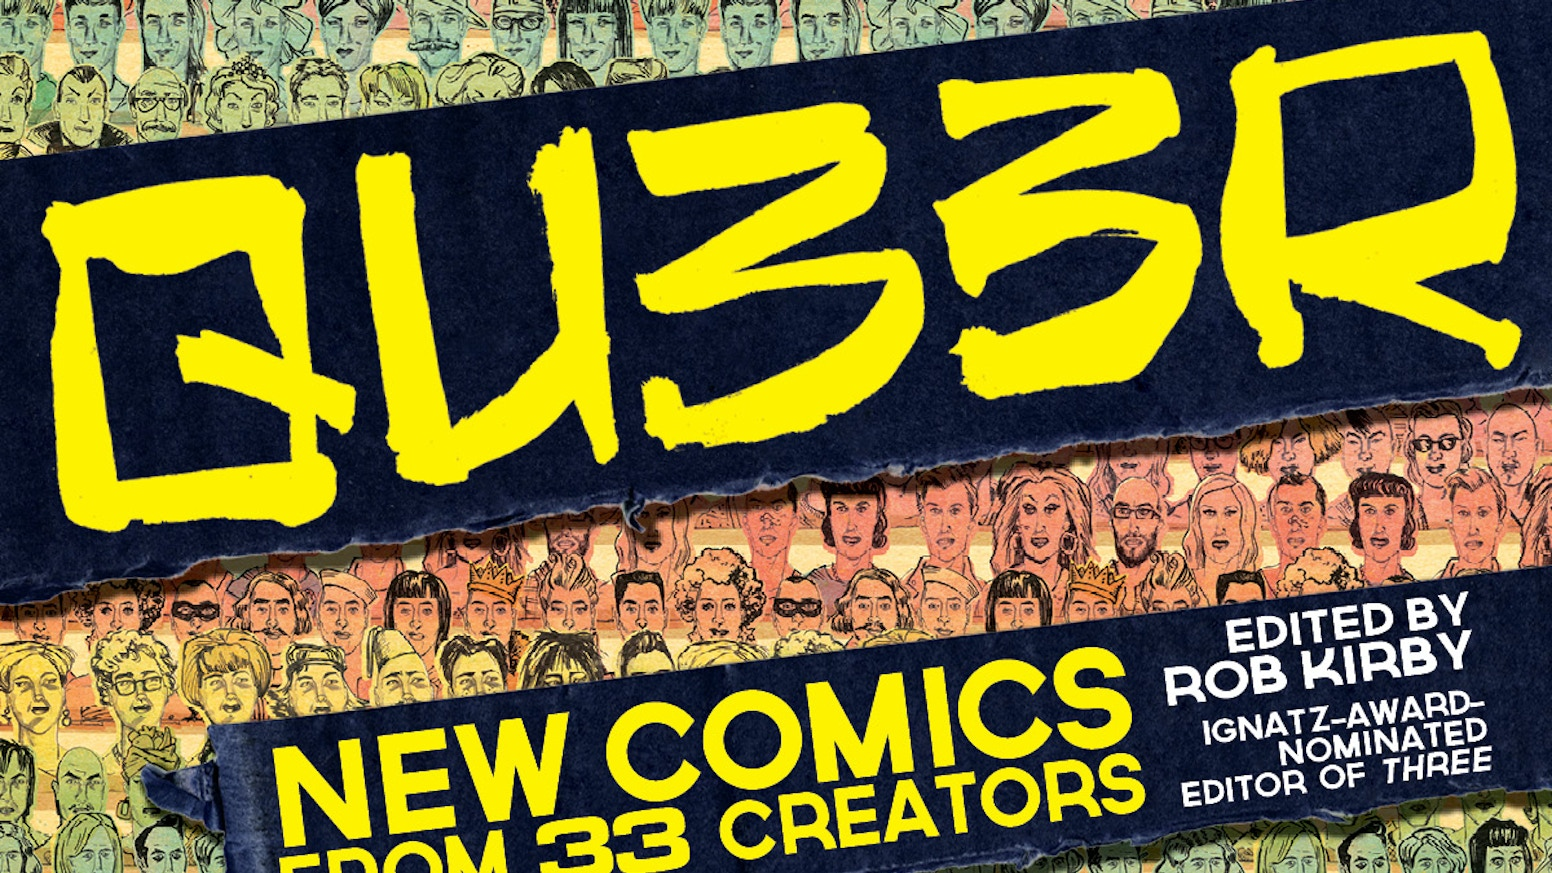 QU33R, from Ignatz-Award-nominated editor Rob Kirby, features 241 pages of new comics from 33 contributors—legends and new faces alike.